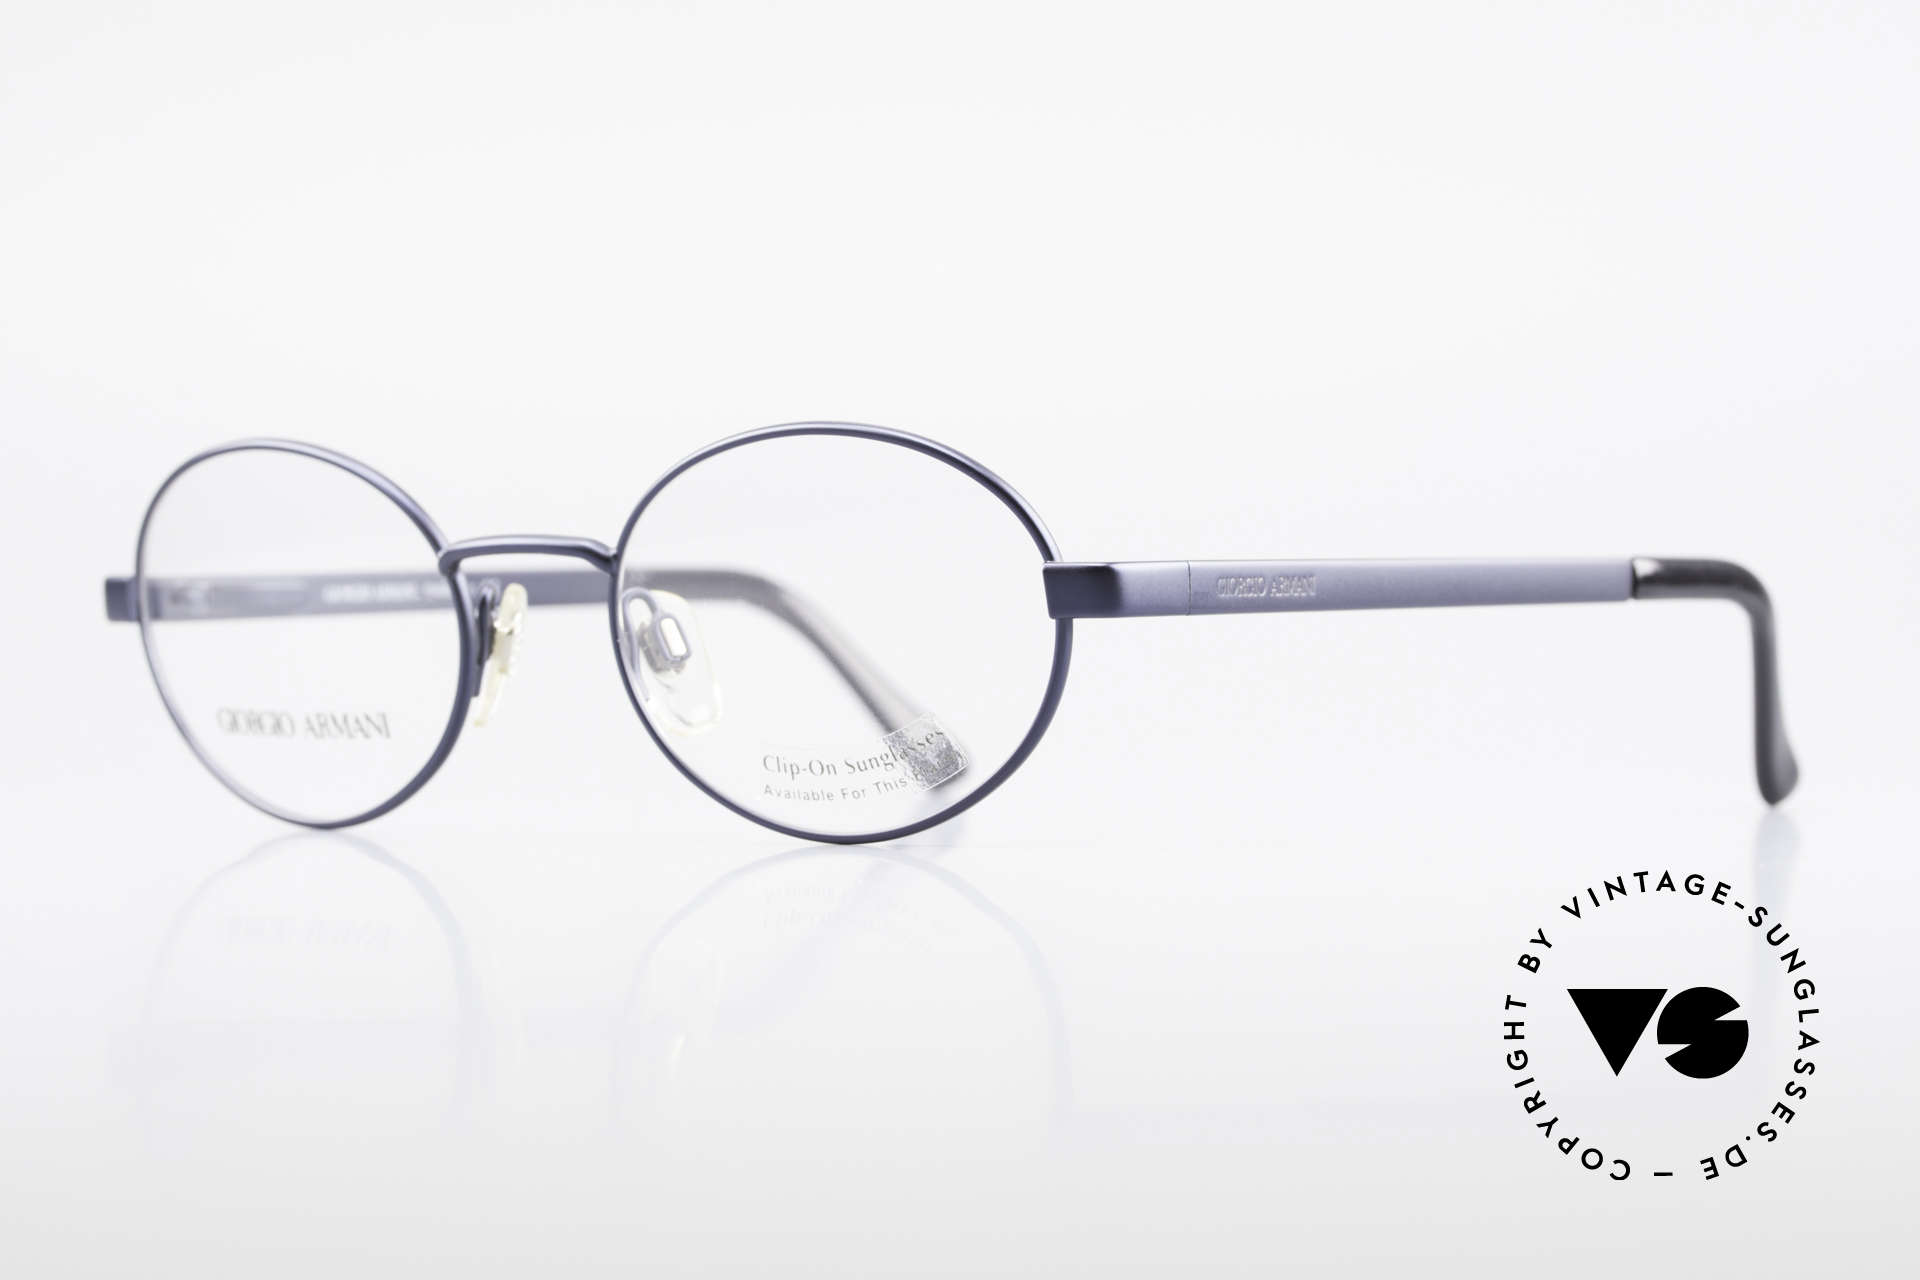 Giorgio Armani 257 90's Oval Vintage Eyeglasses, deep-blue frame finish and flexible spring hinges, Made for Men and Women